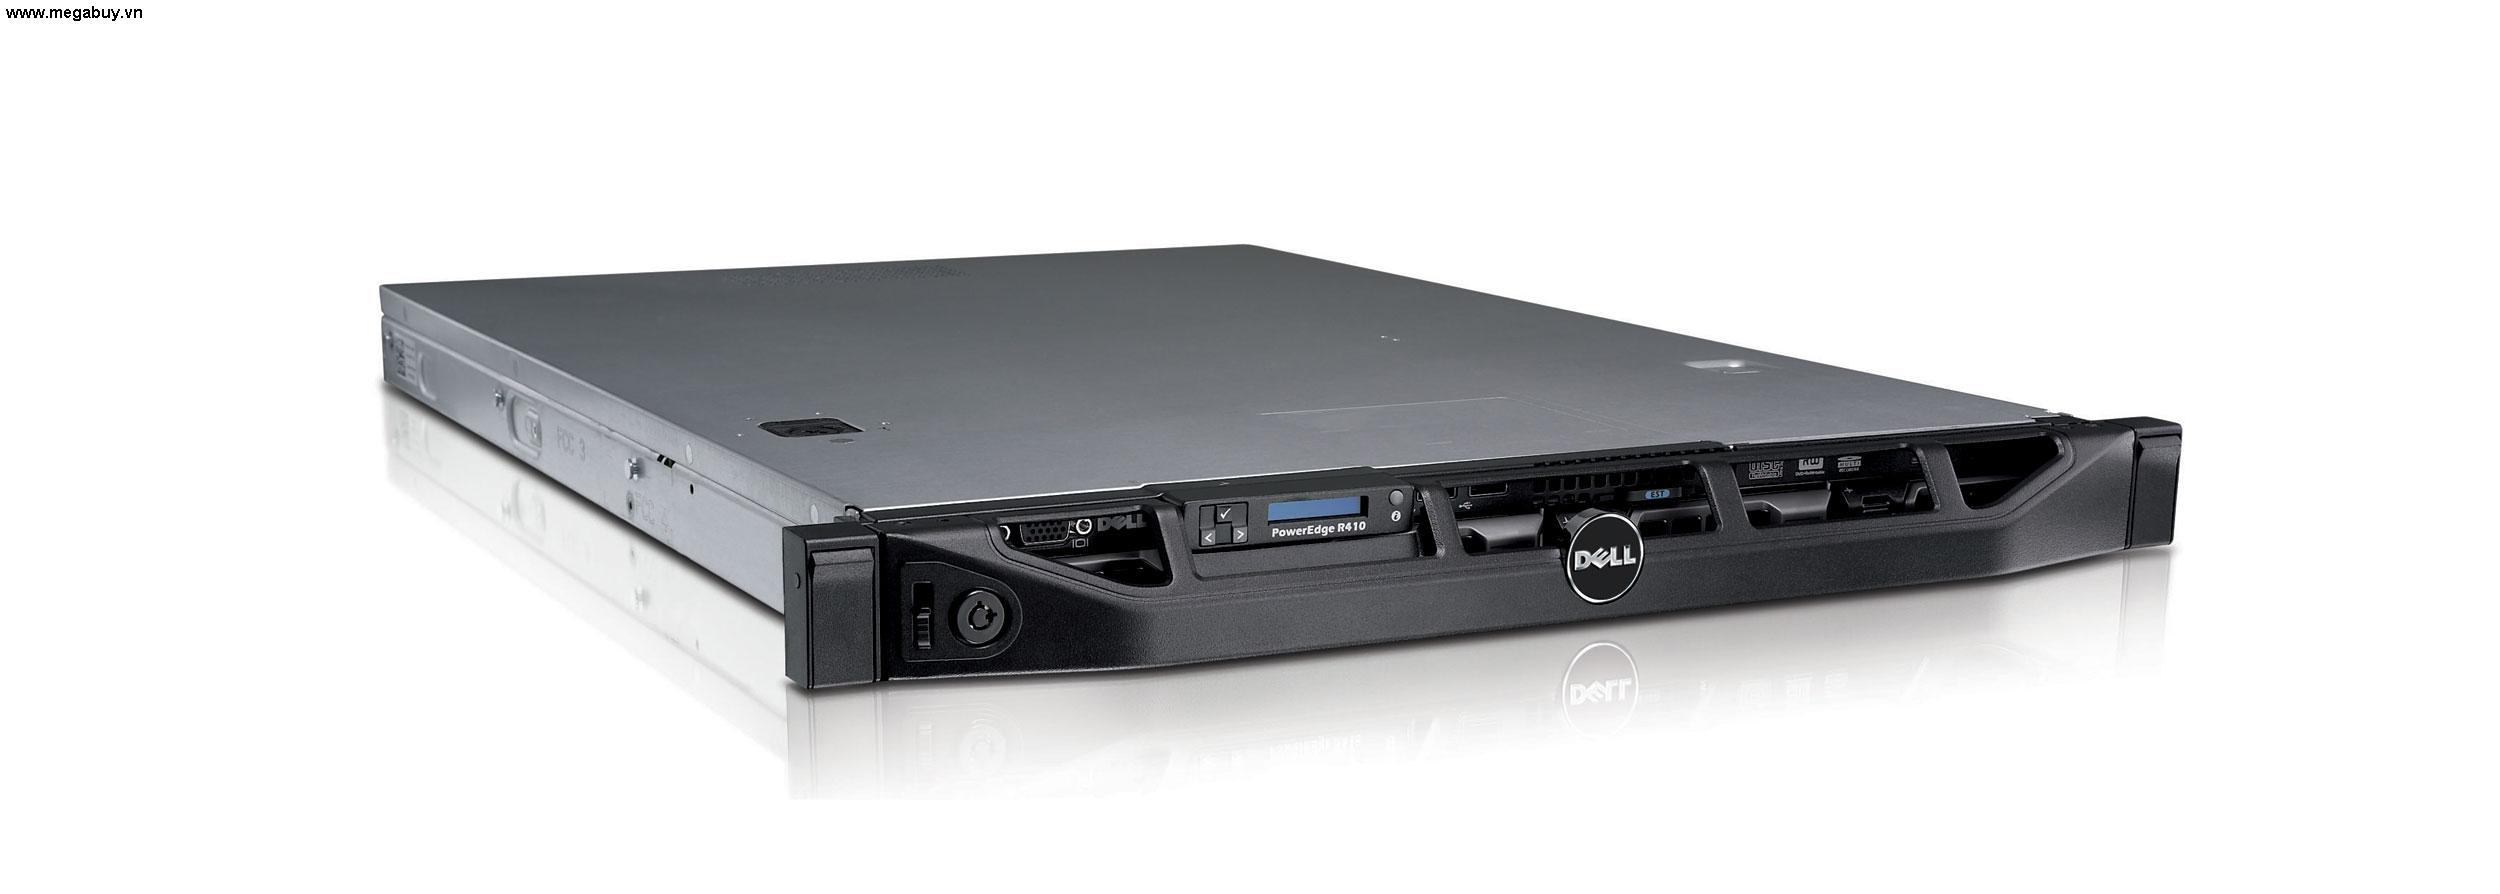 Dell PowerEdge R410